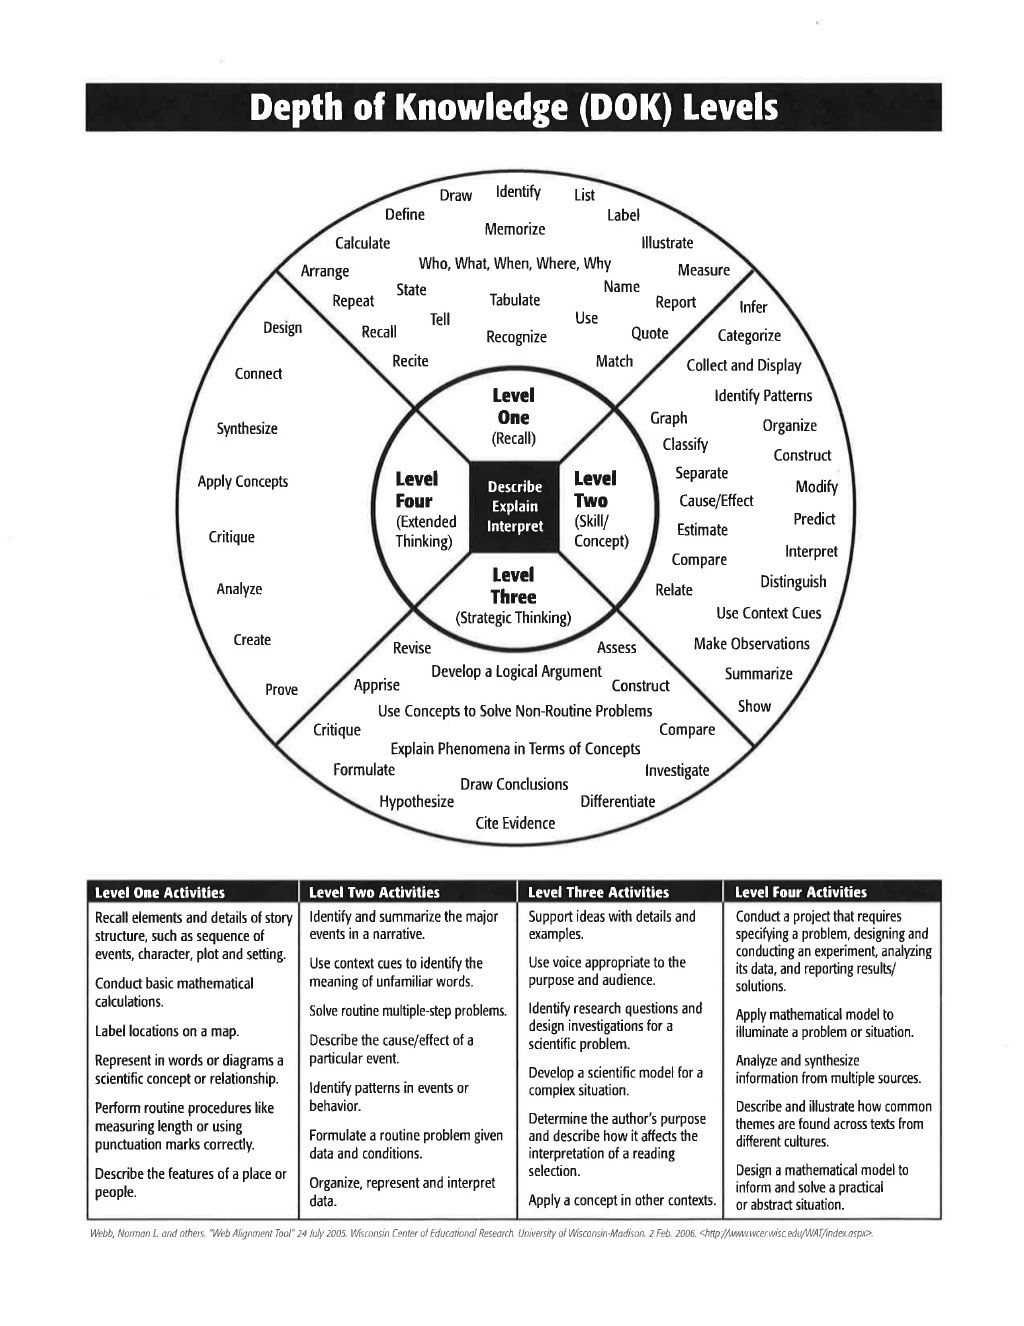 Depth Of Knowledge Chart Teaching Dok Levels Jpg 1024x1326